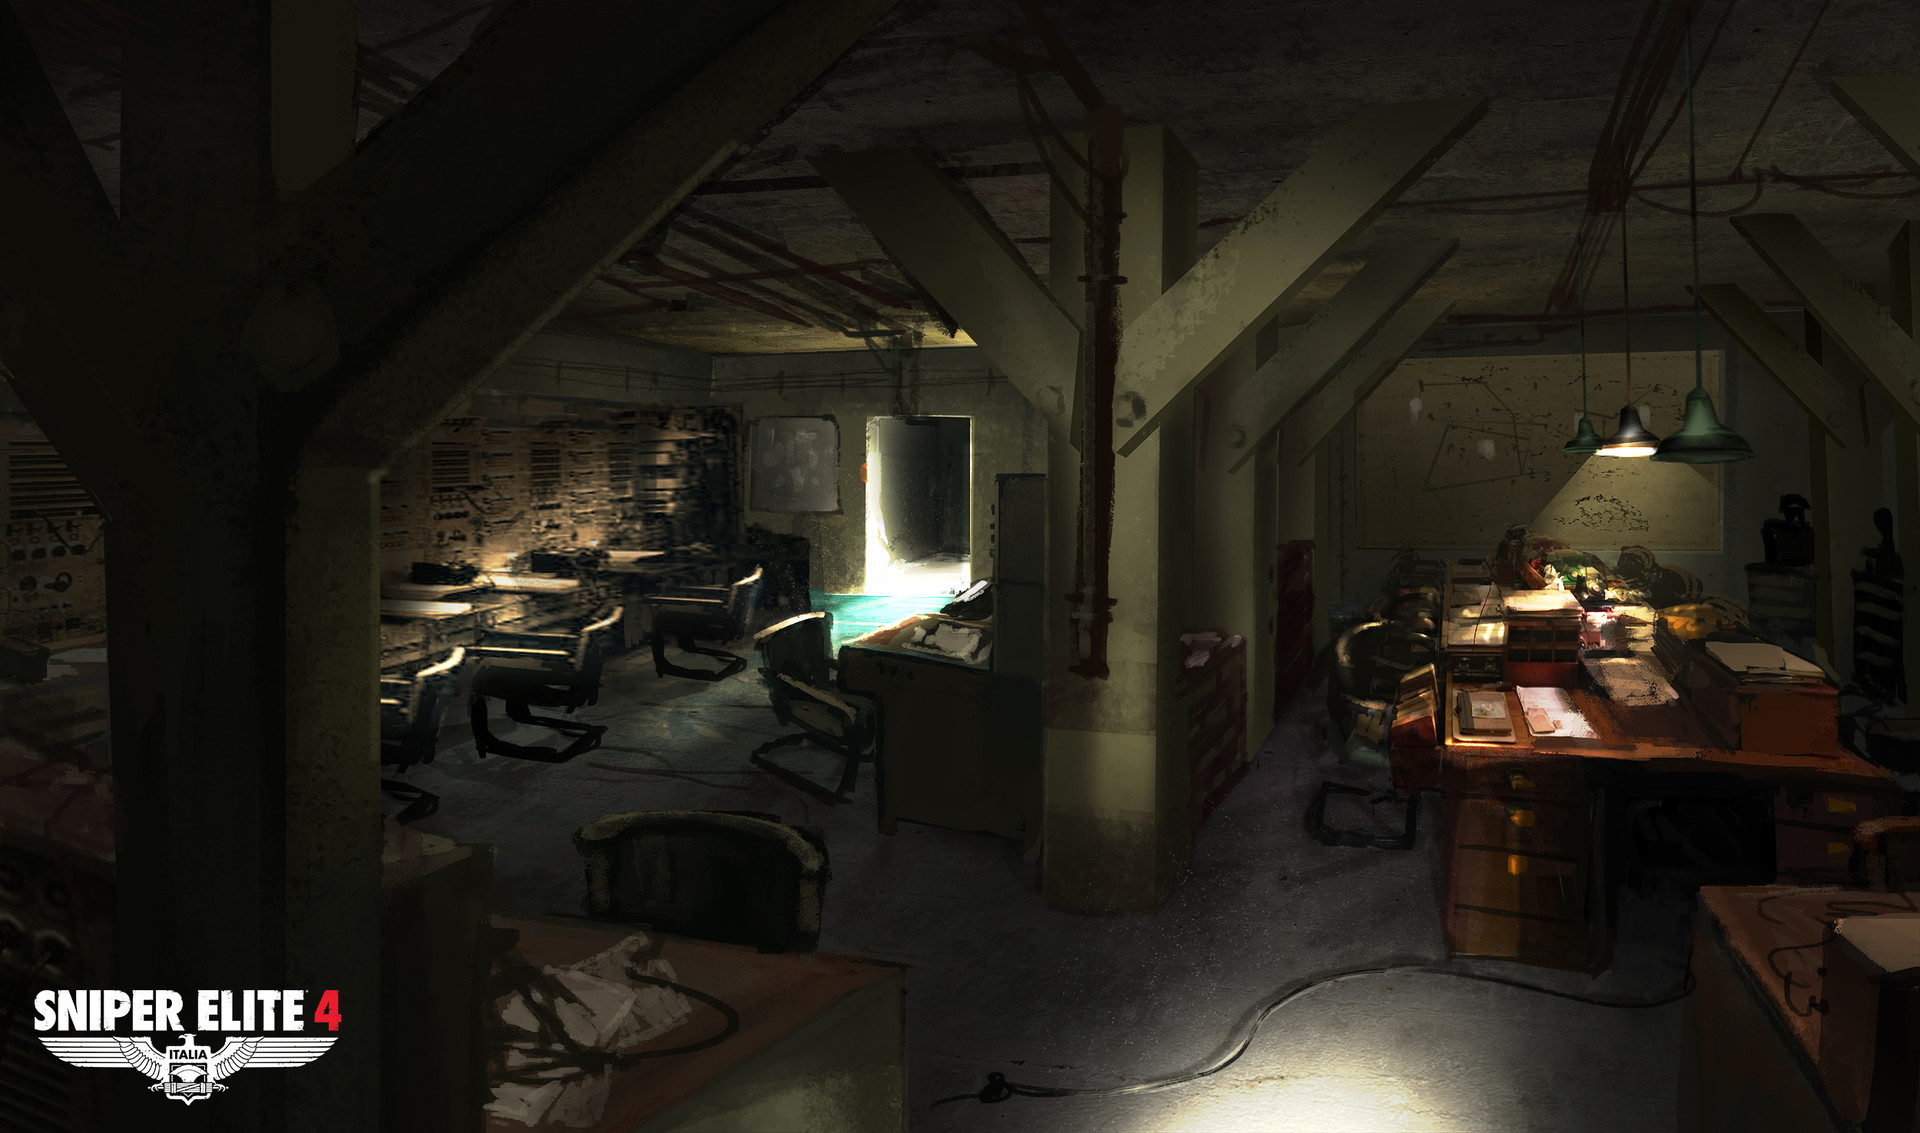 Jack eaves coastal facility radar basement concept 01